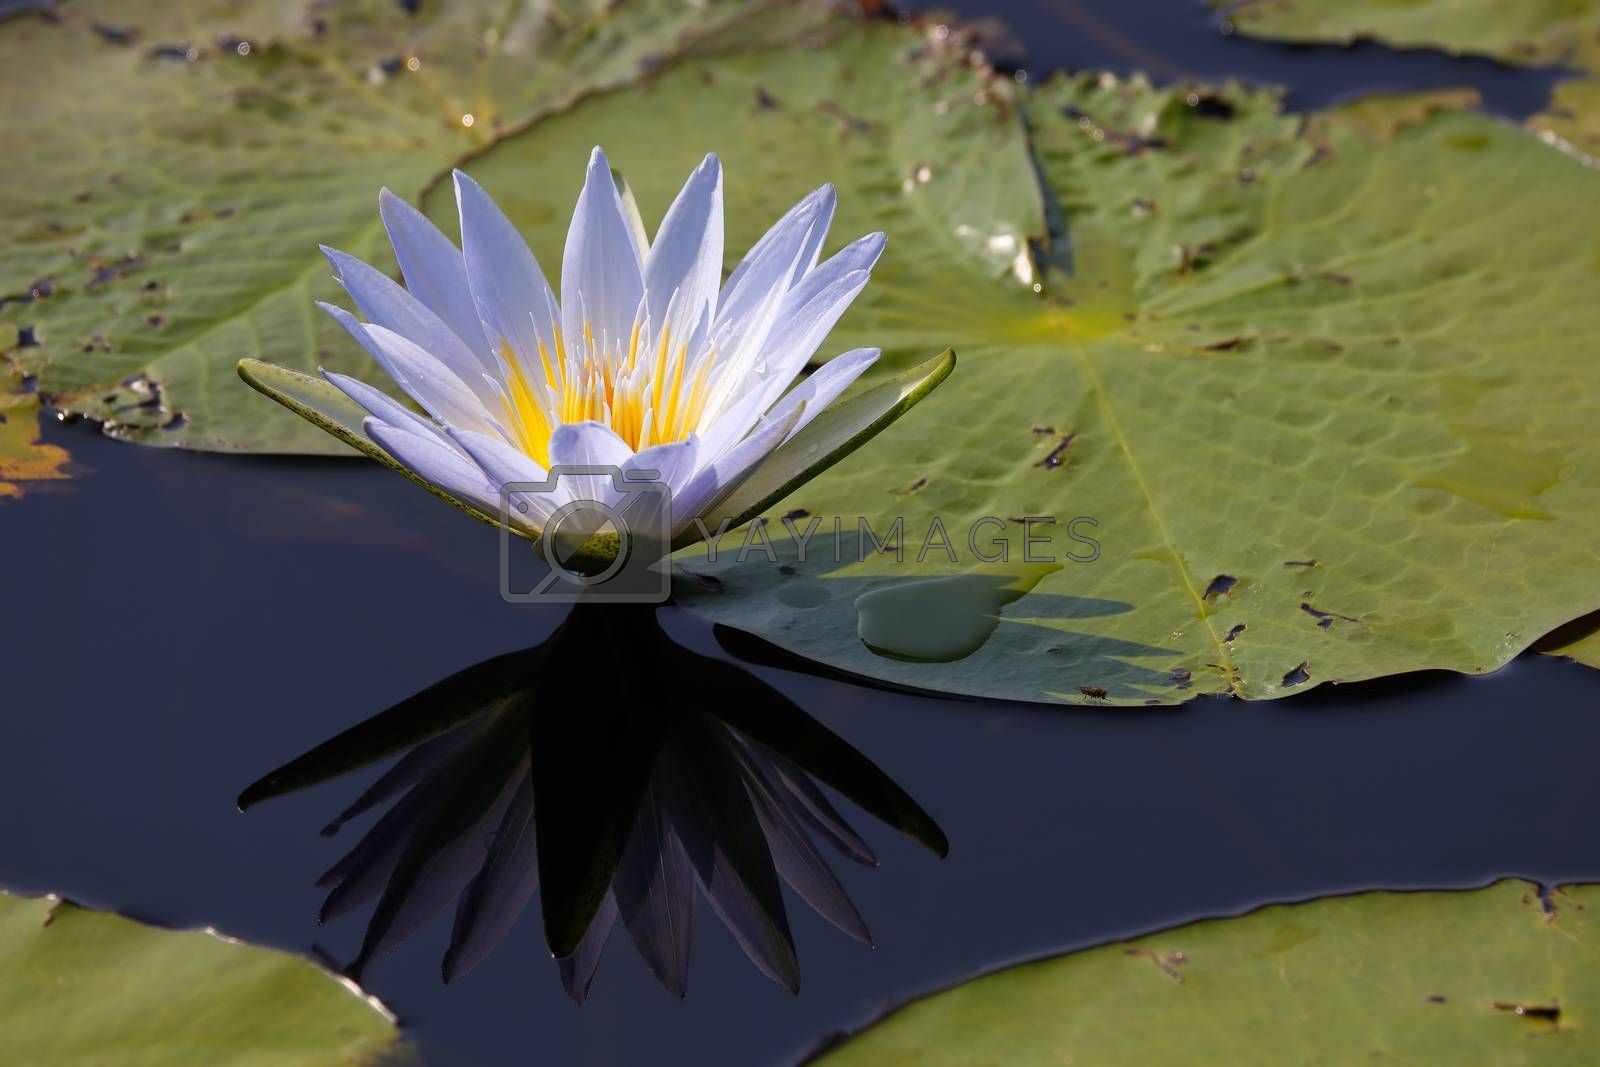 Vibrant blue star lotus waterlily (Nymphaea nouchali) in lake with lily pads and reflection, Groot Marico, South Africa